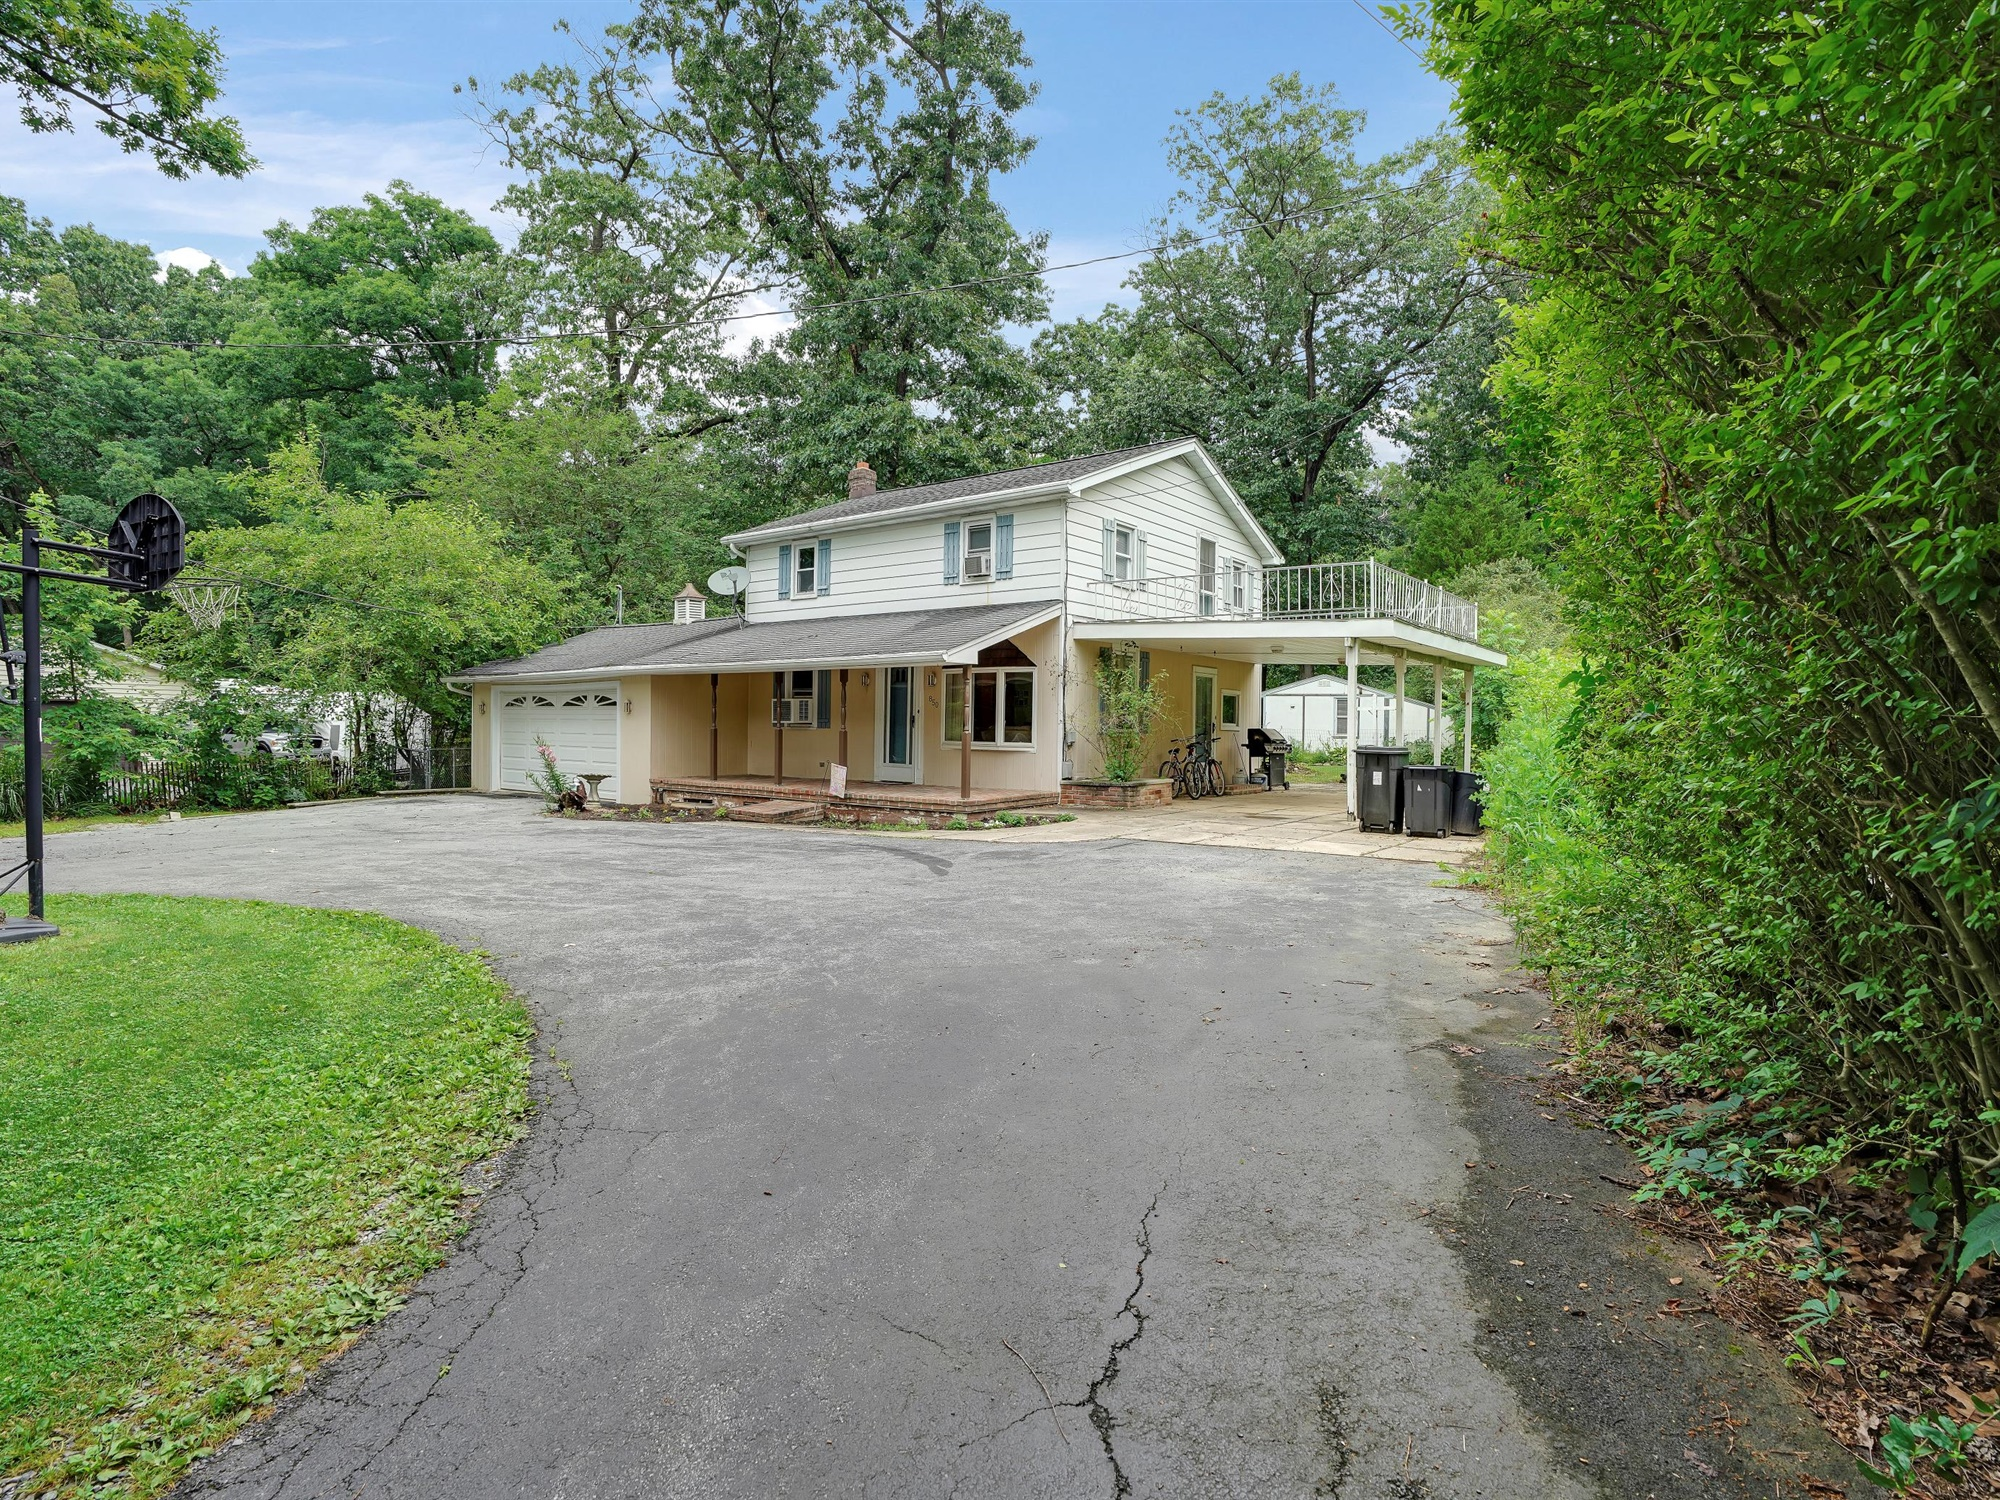 850 Prescott Dr. - wooded setting with convenience